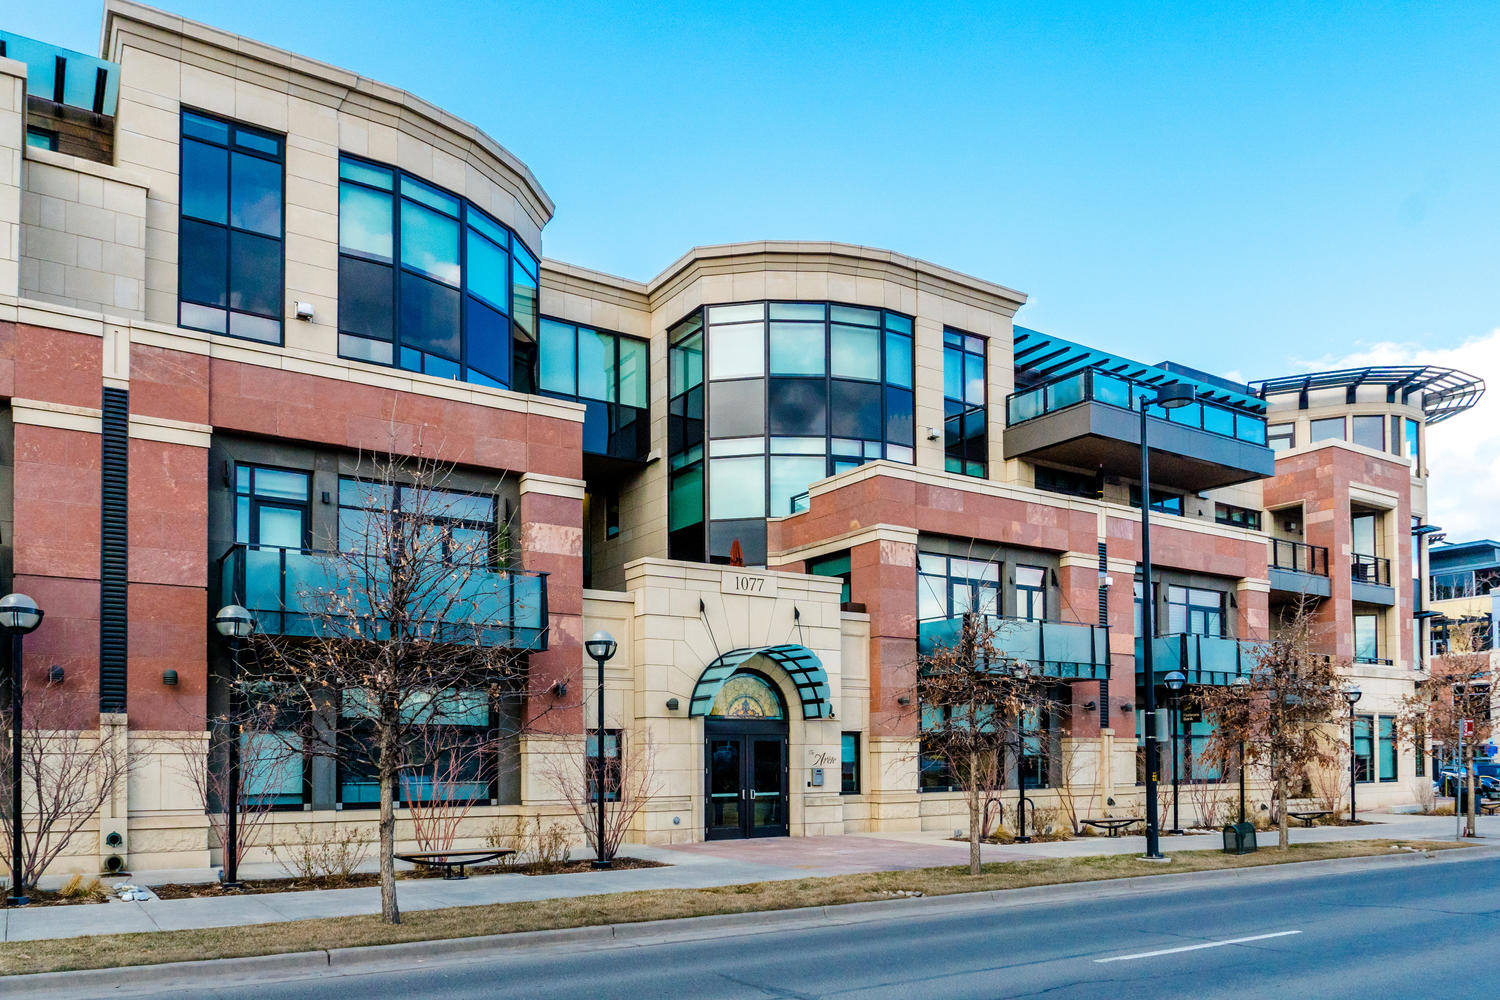 Condominium for Sale at Luxurious Urban Contemporary Corner Unit in the heart of Boulder 1077 Canyon Boulevard 307 Boulder, Colorado, 80302 United States